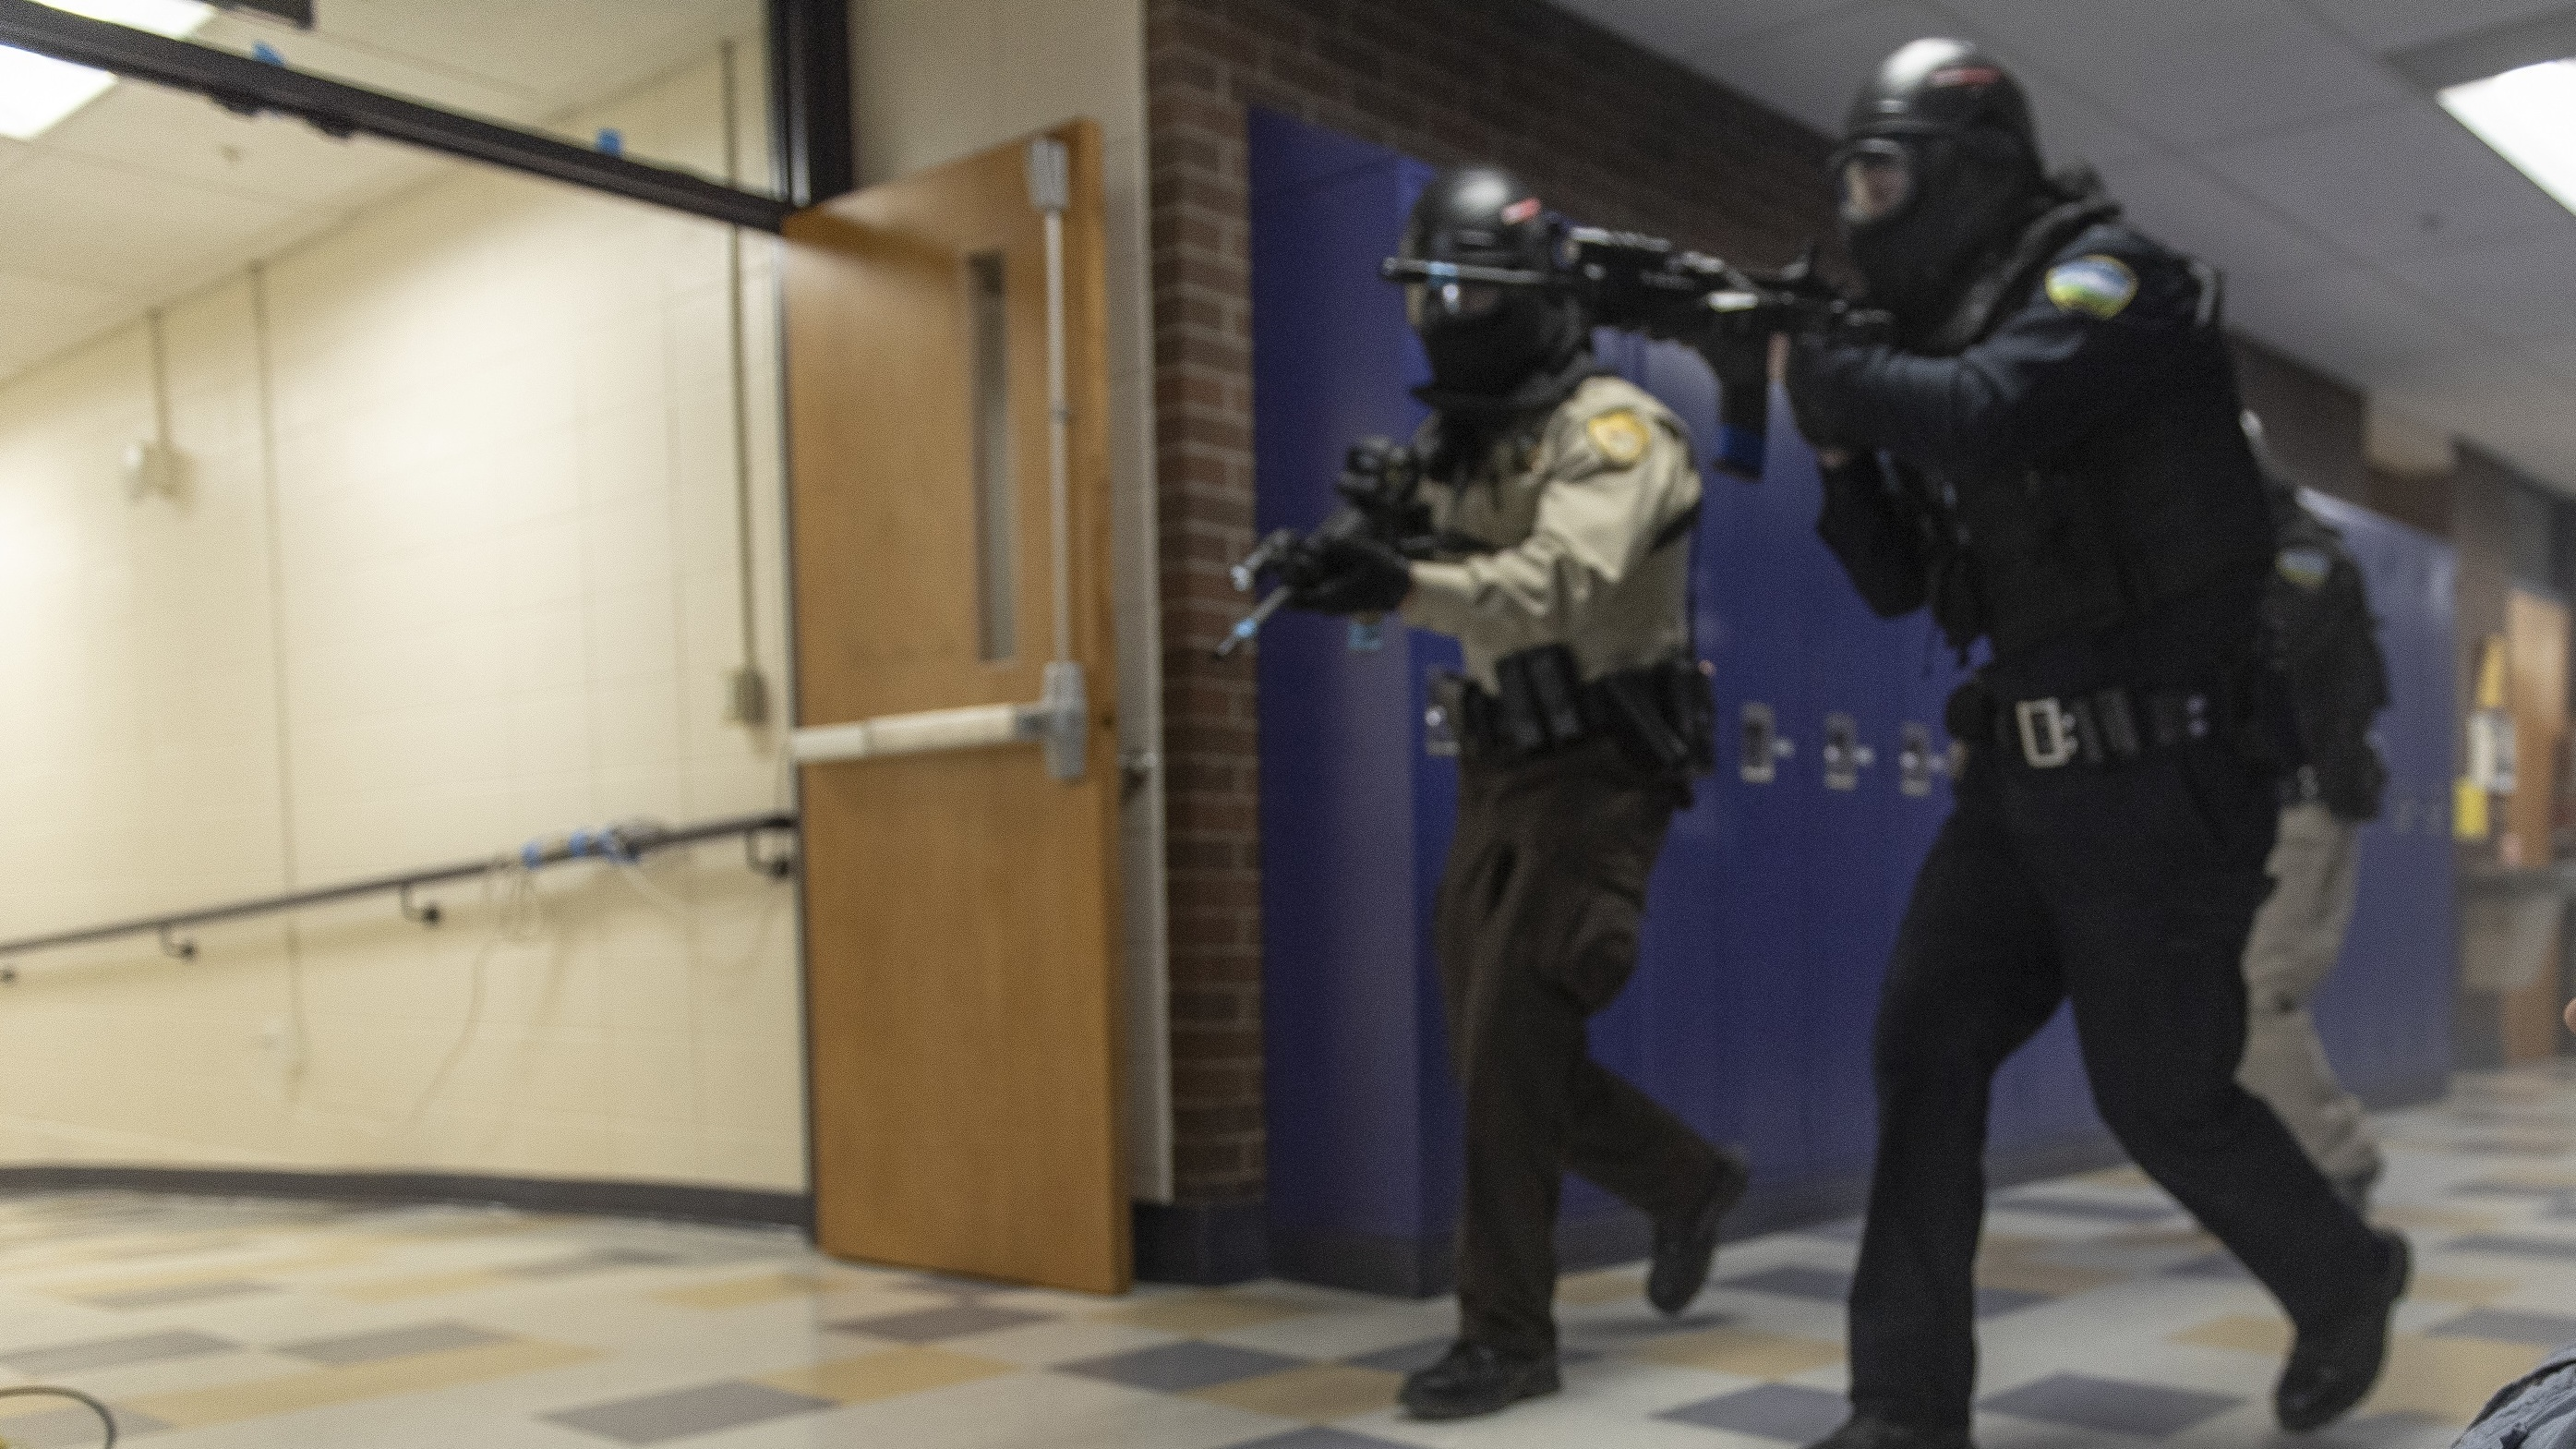 Experts Worry Active Shooter Drills In Schools Could Be Traumatic For Students